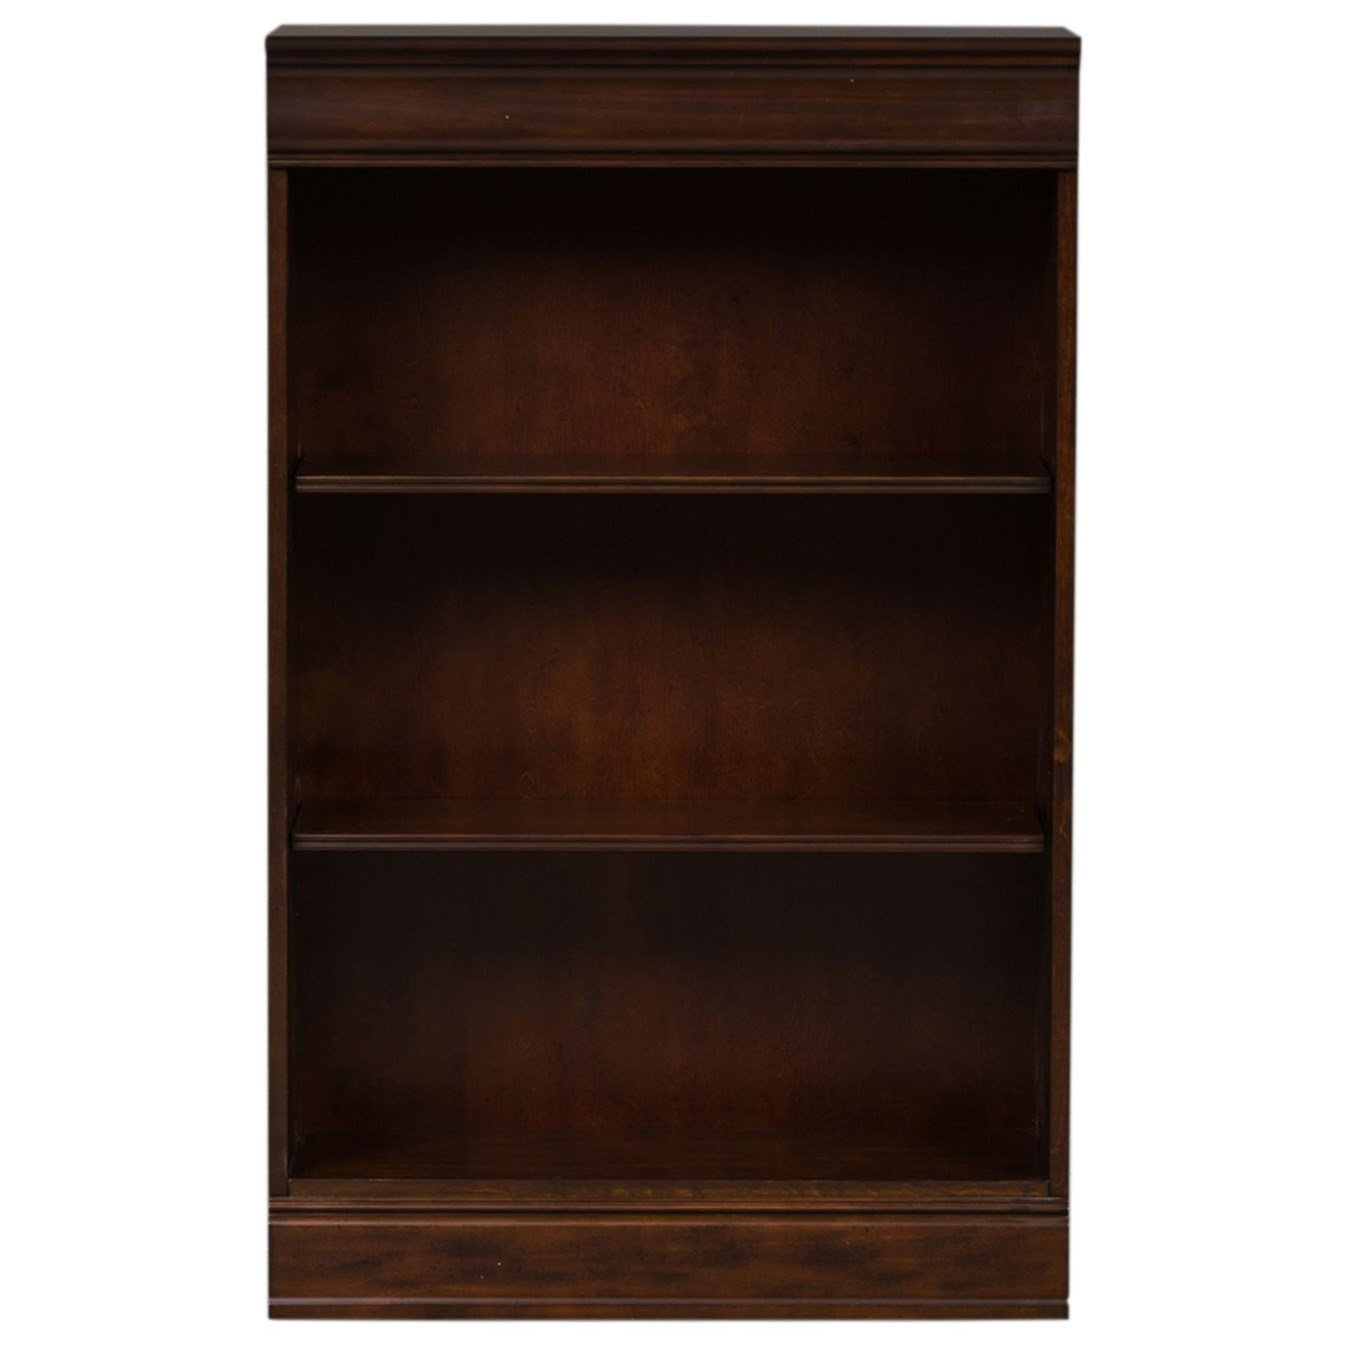 Brayton Manor Jr Executive 48 Inch Bookcase by Liberty Furniture at Zak's Home